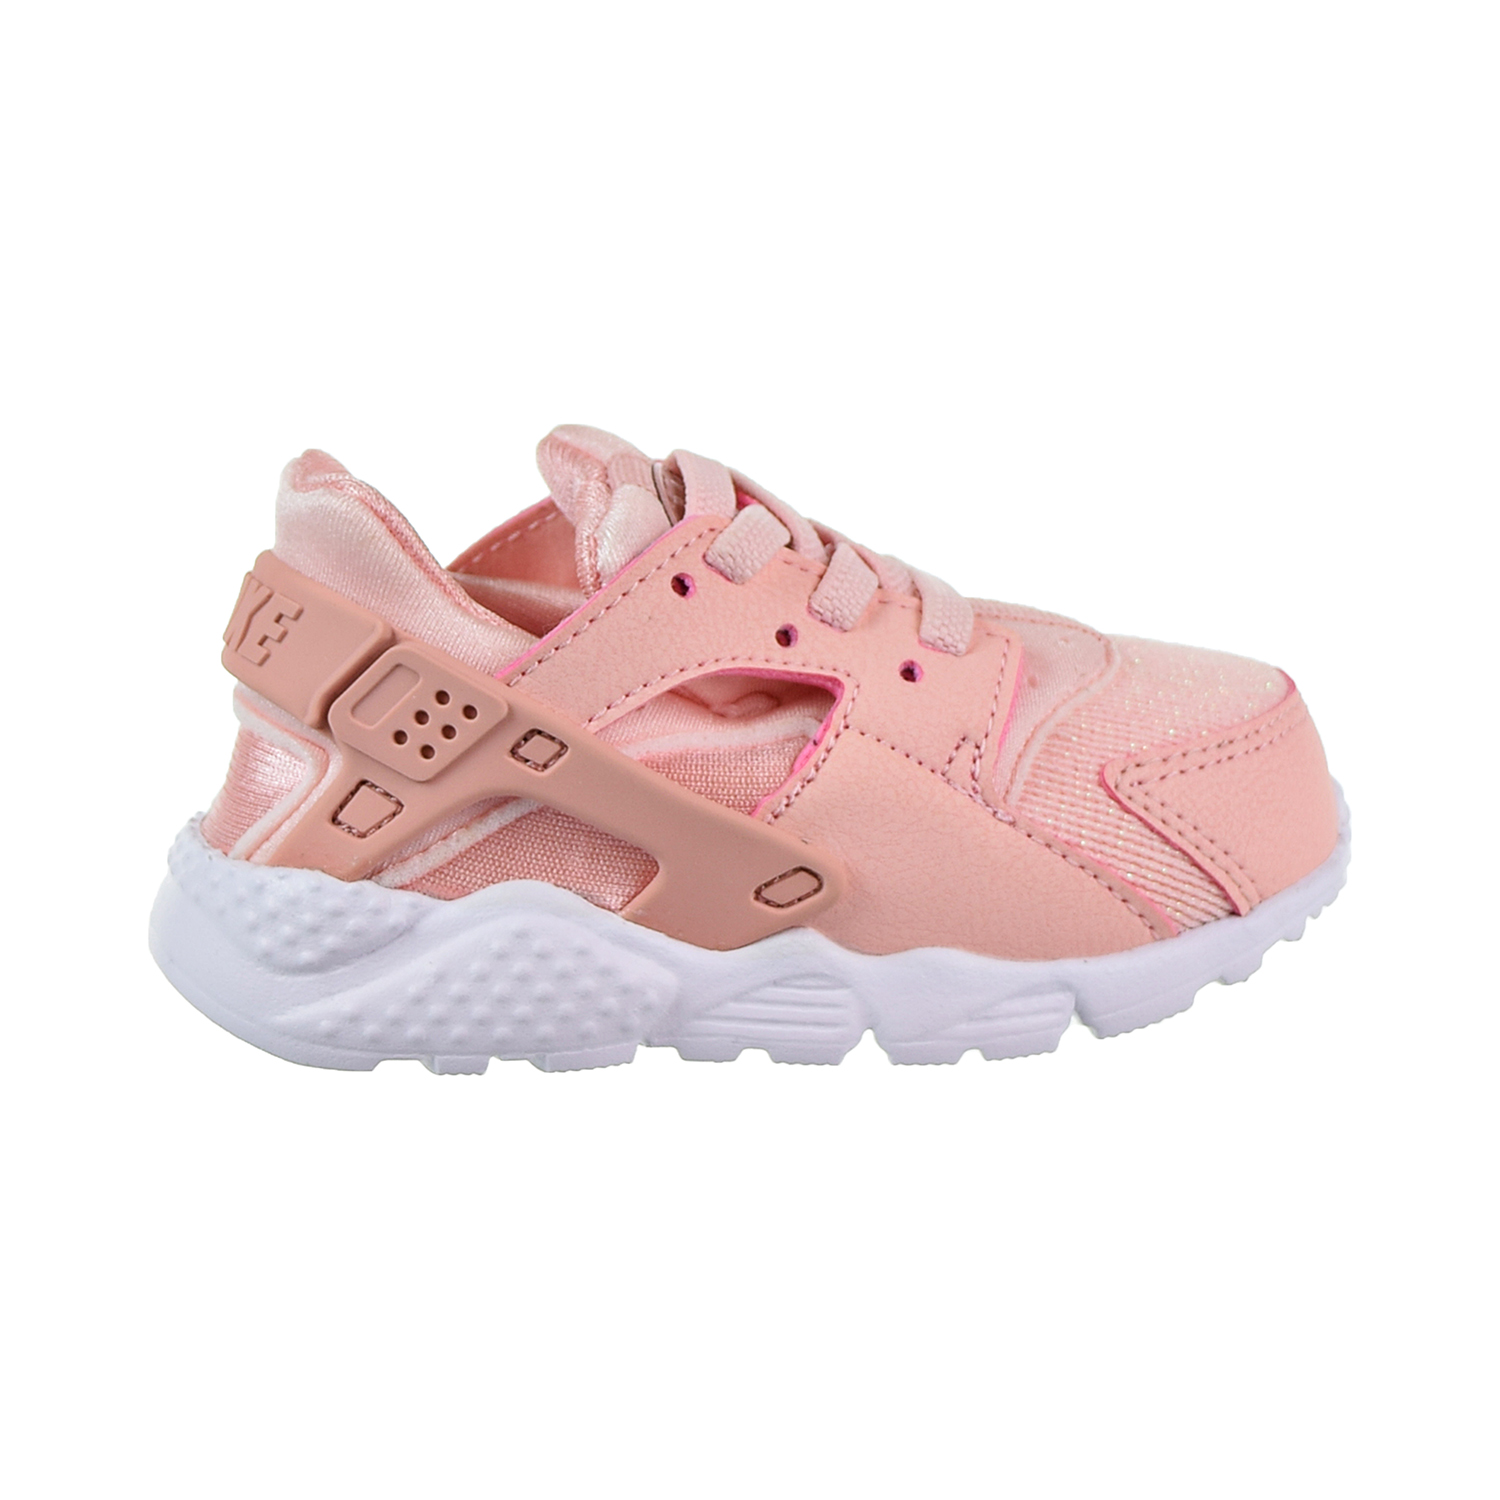 79ffc3942be4d Details about Nike Huarache Run SE Toddler s Shoes Storm Pink Rust Pink White  859592-604